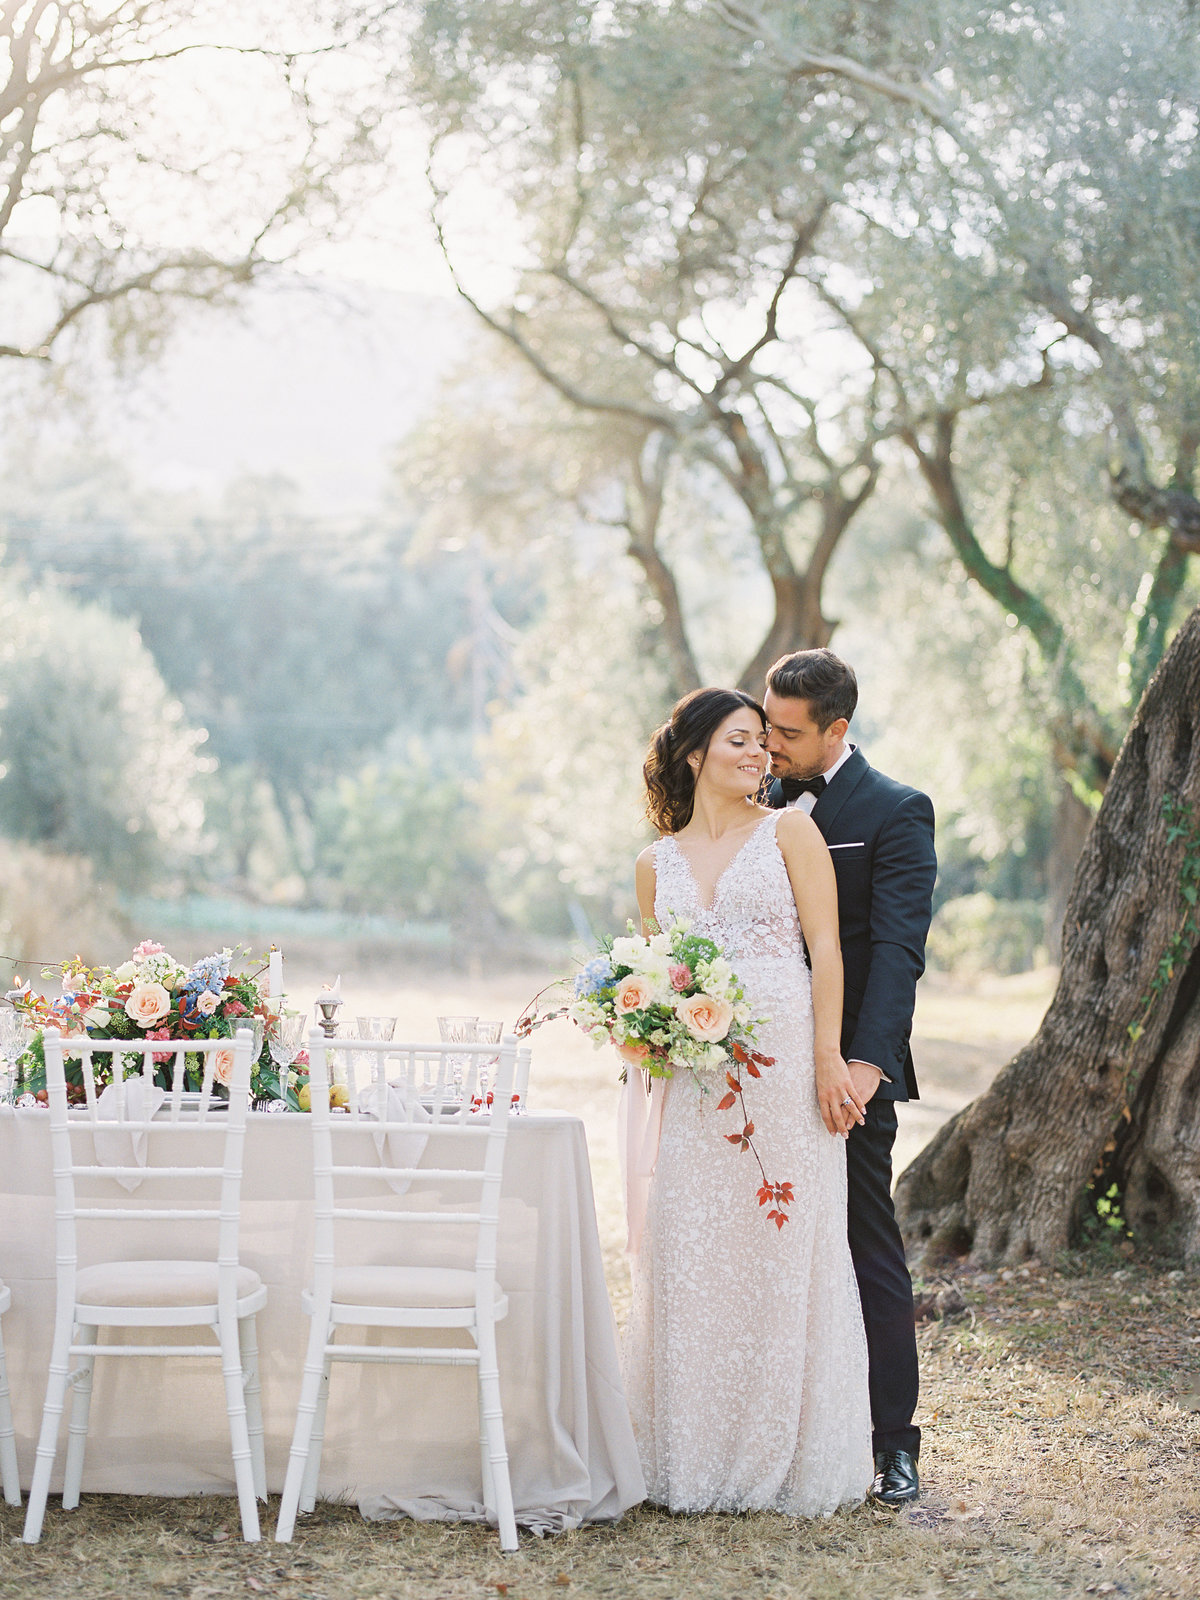 fine art wedding photography in corfu by Kostis Mouselimis on film_001